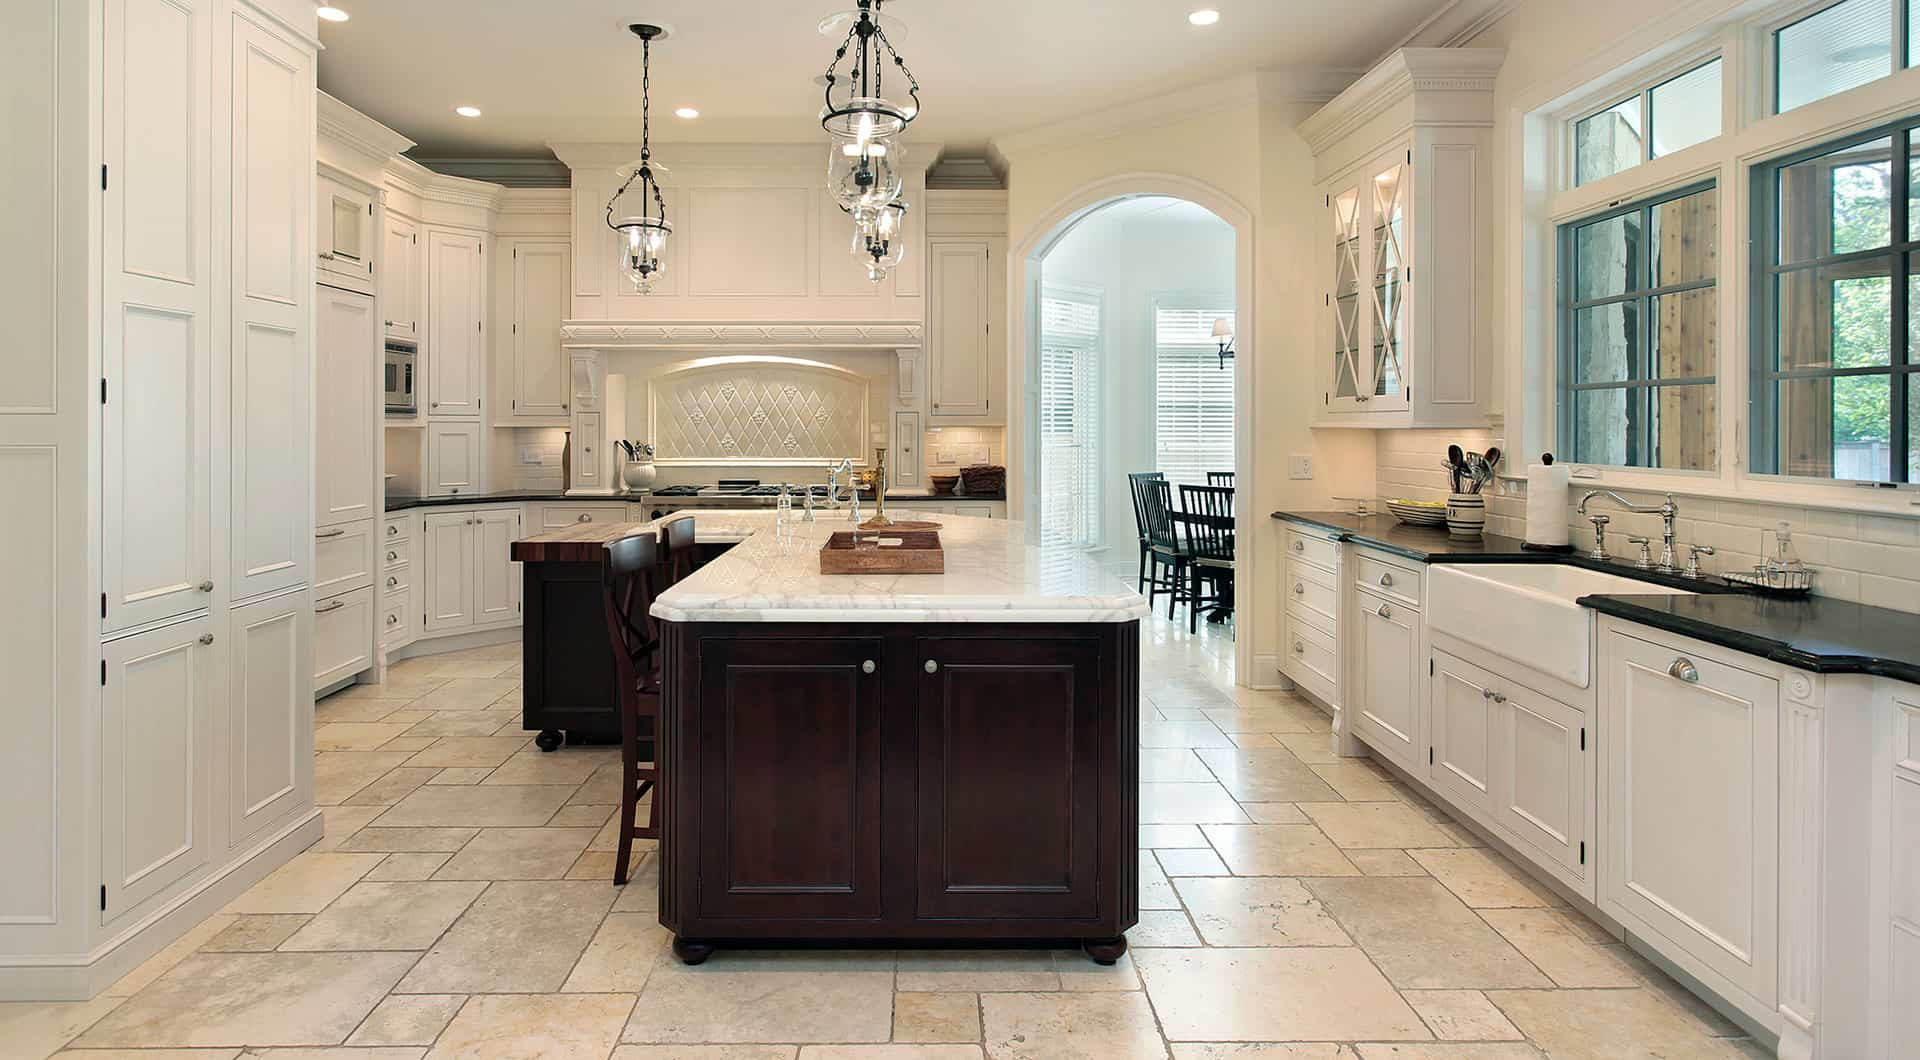 Kitchen Tile Refinishing Services, Bathroom Tile Refinishing Services